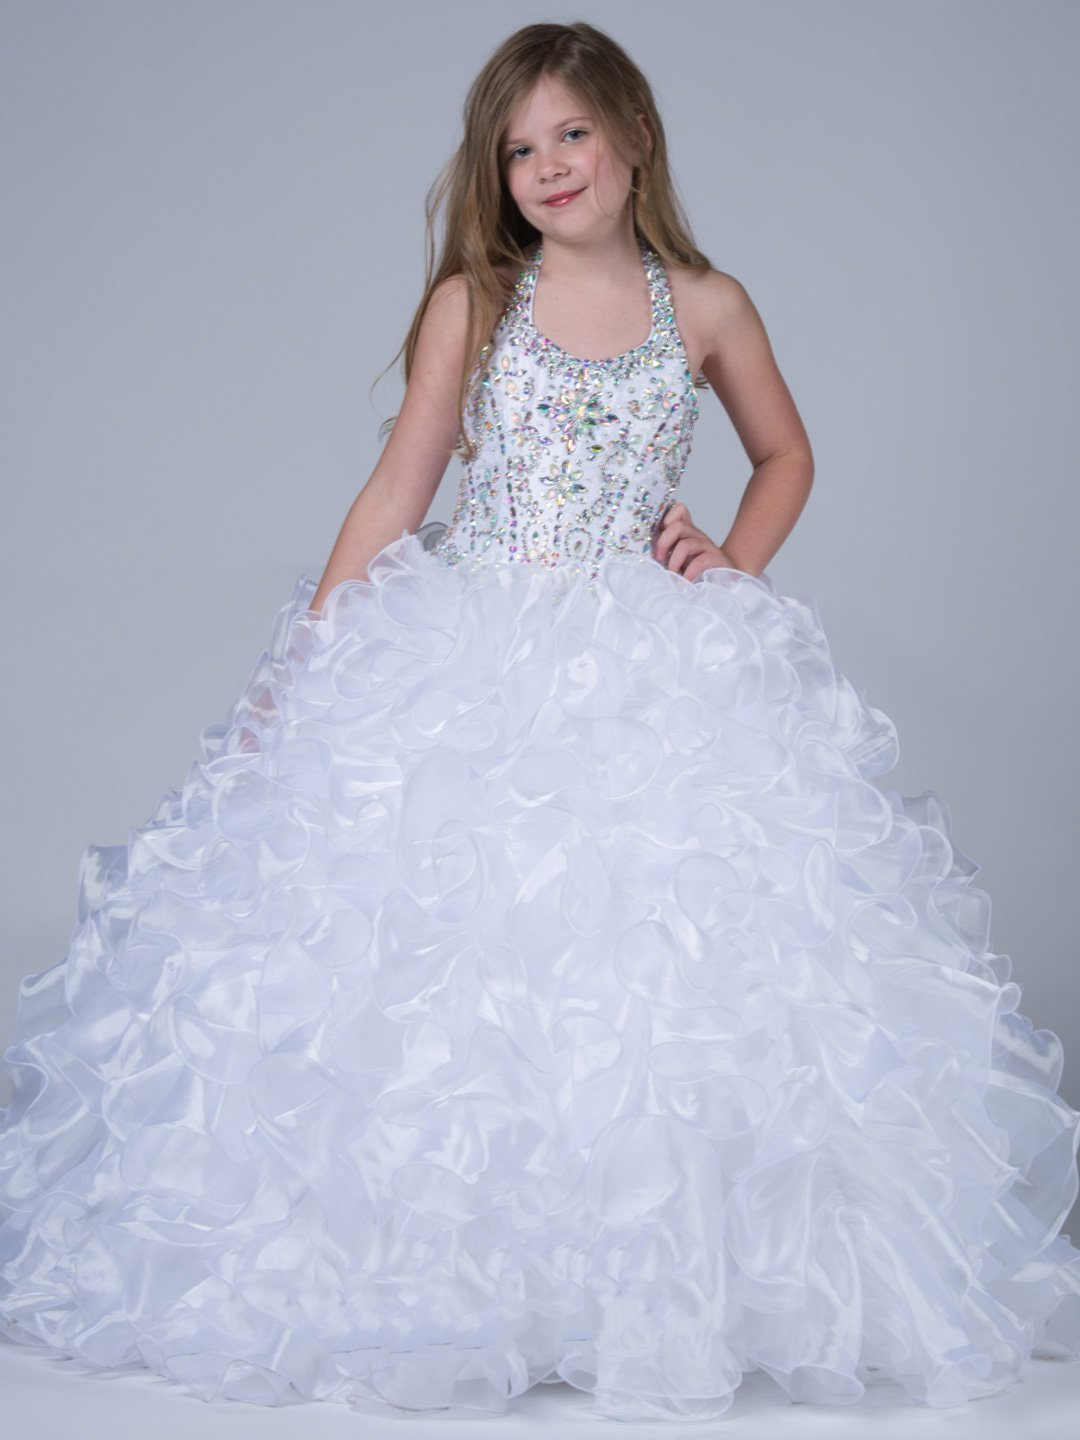 Little Rosie Pageant Gowns | Pageant Dress For Girl | Little Rosie ...